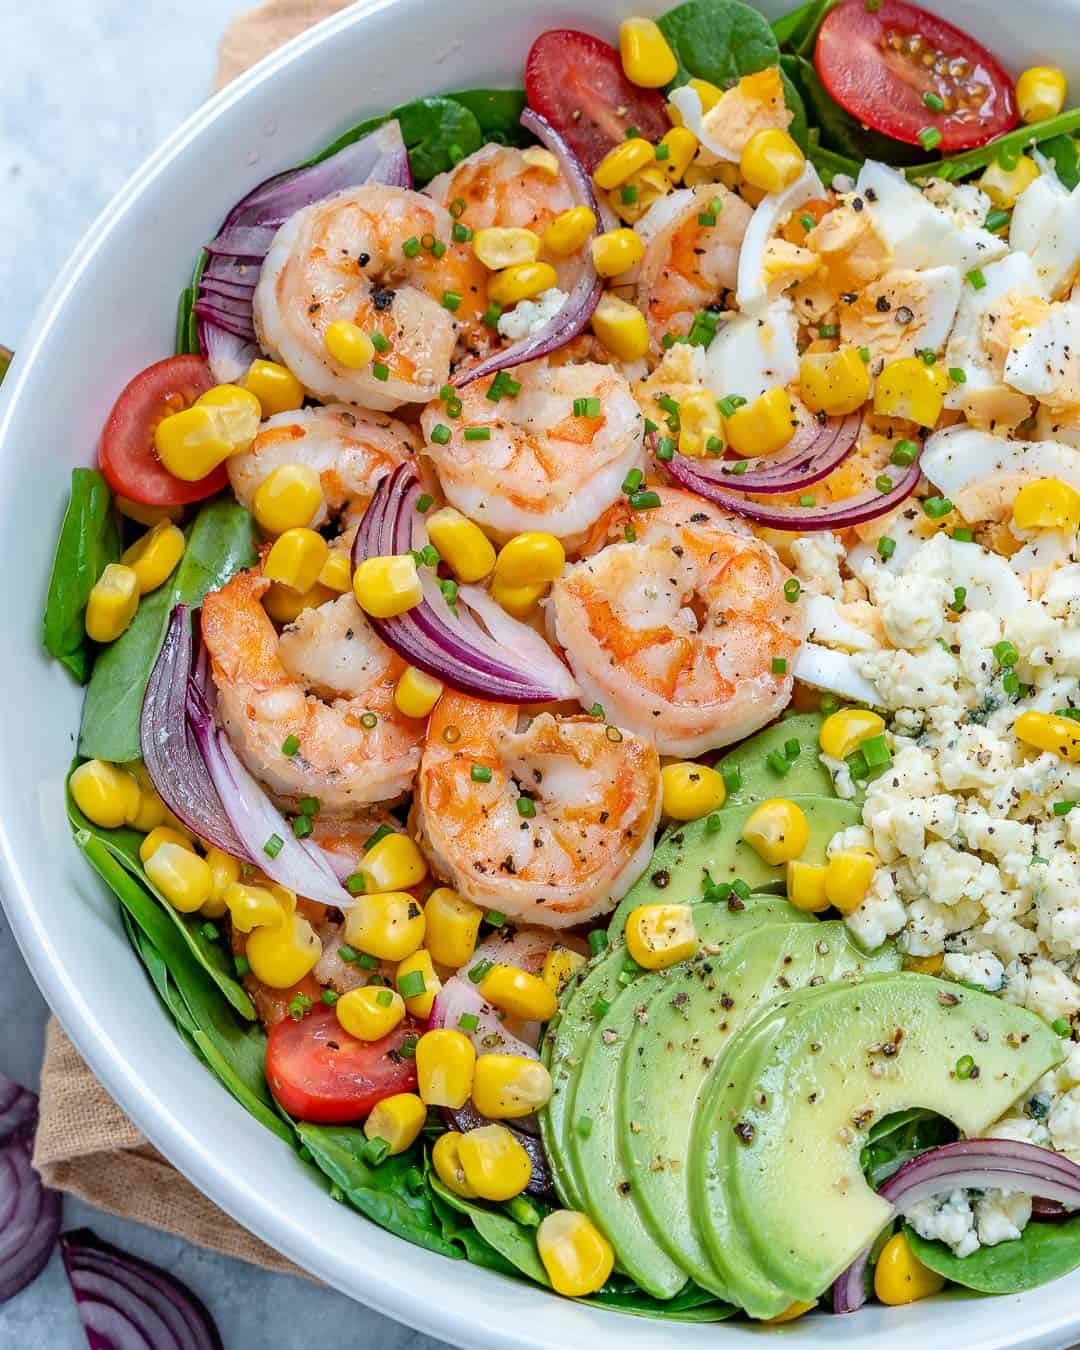 Delicious Spicy Shrimp Avocado Salad Recipe Healthy Fitness Meals